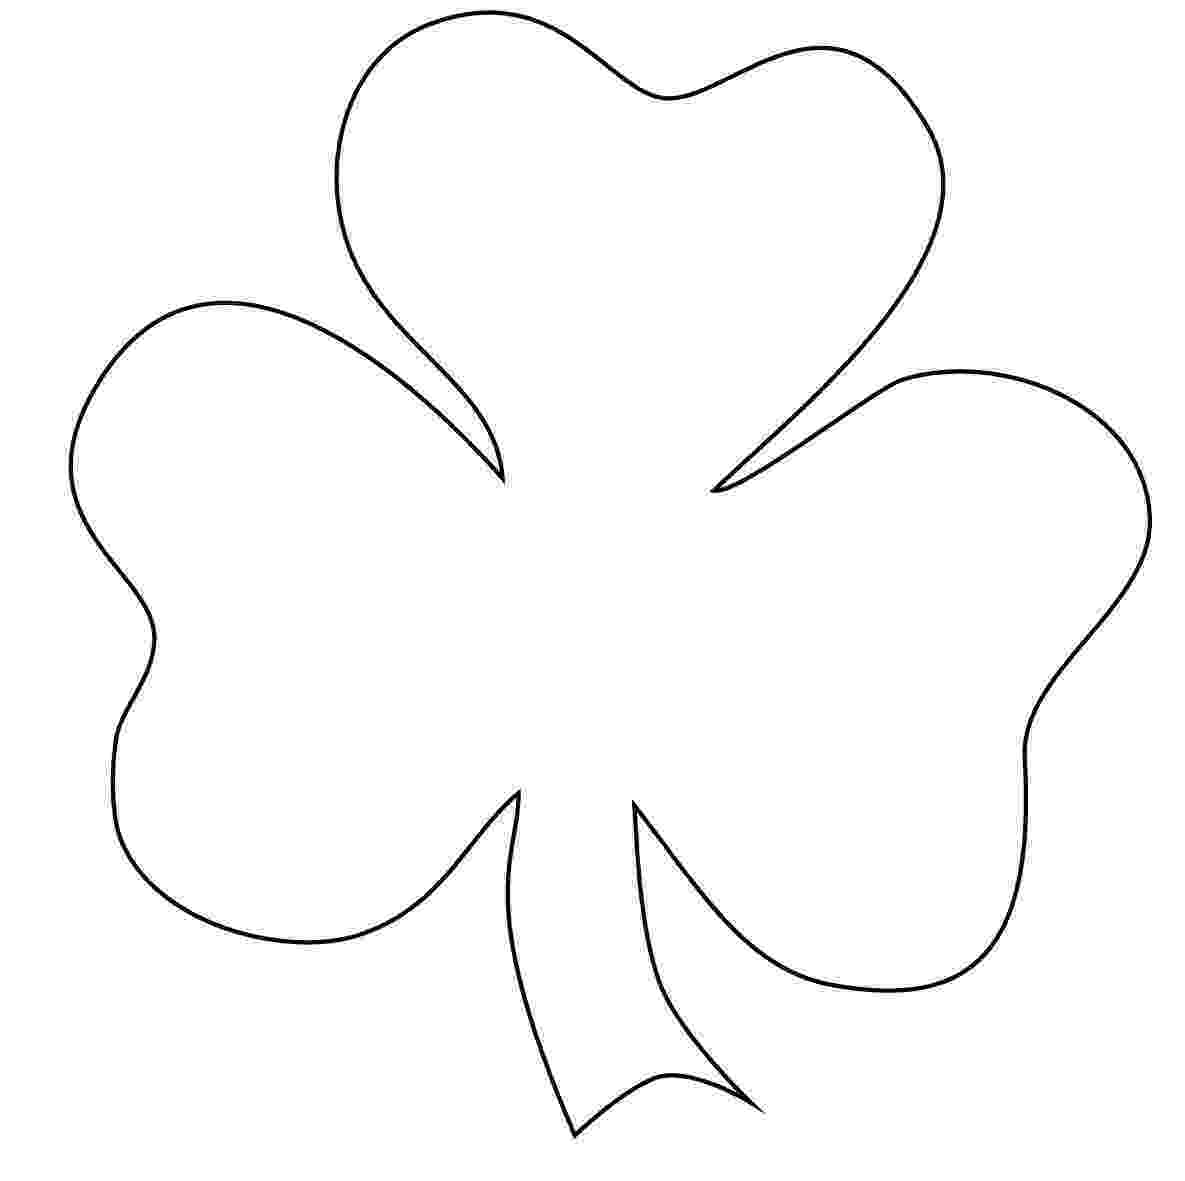 shamrock coloring free printable shamrock coloring pages for kids shamrock coloring 1 4